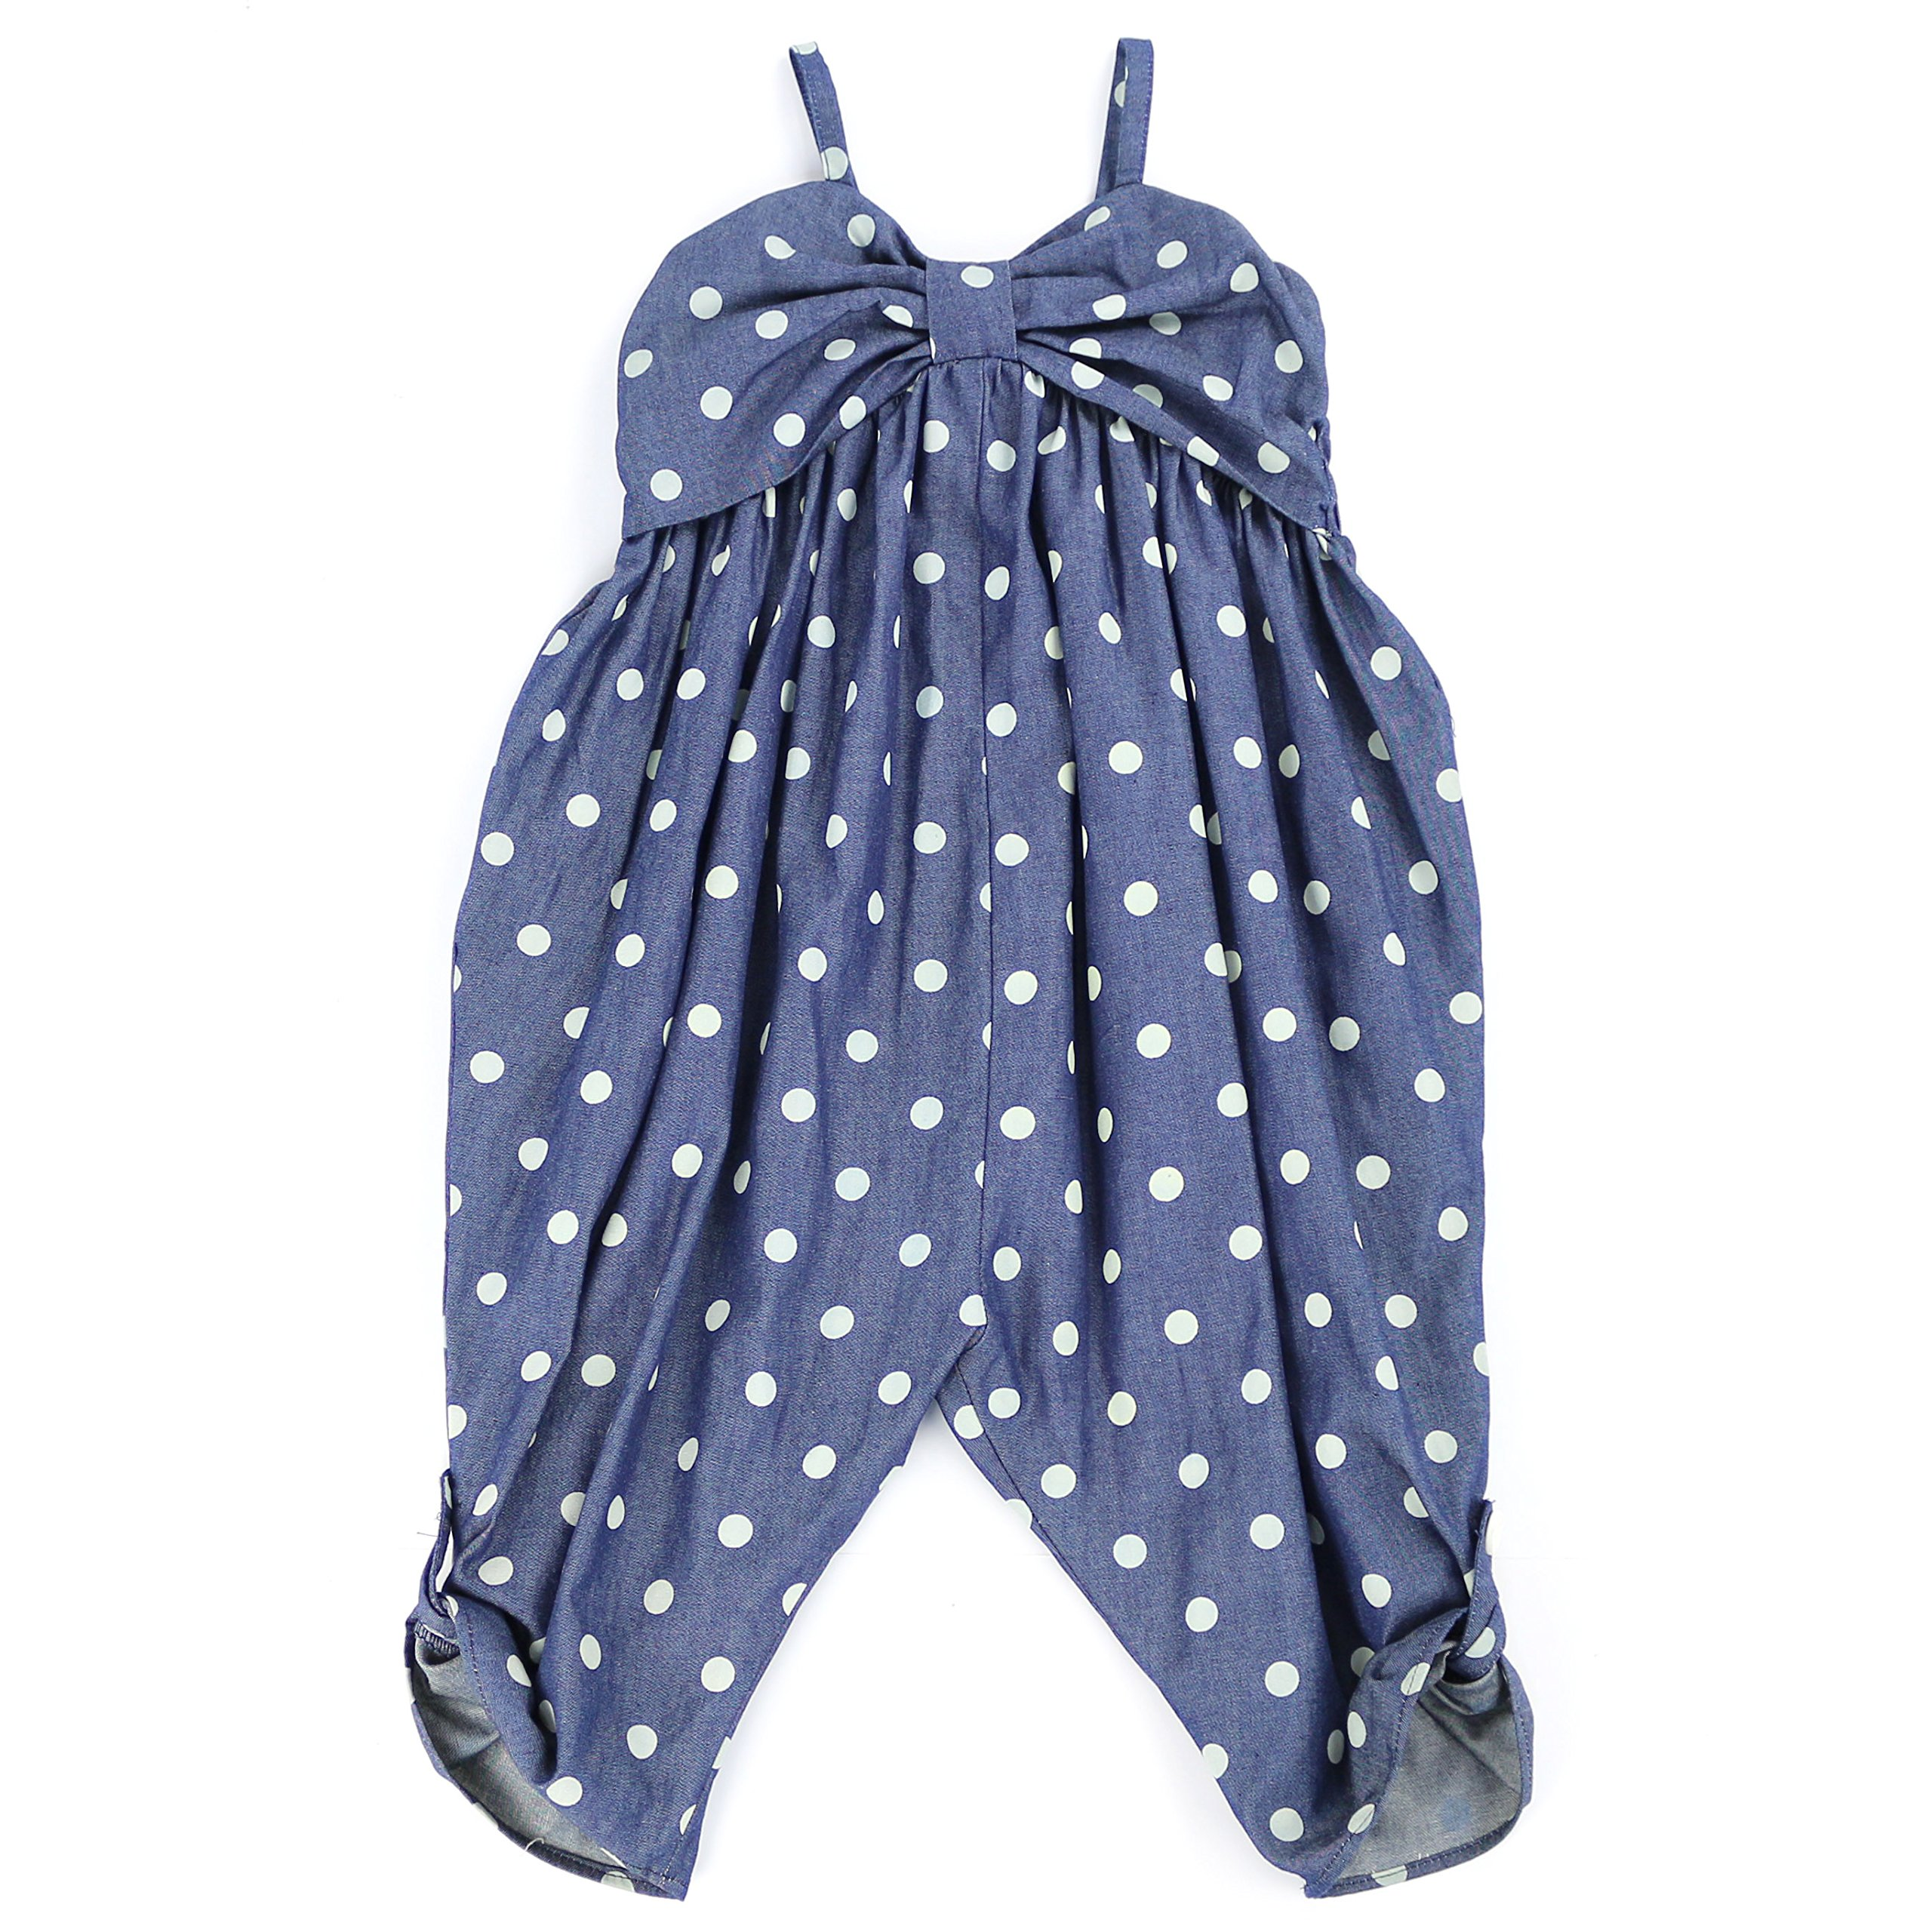 LELEFORKIDS - Toddlers and Girls Happy-Bee Polka Dots Jumpsuit in Denim 2T by LELEFORKIDS